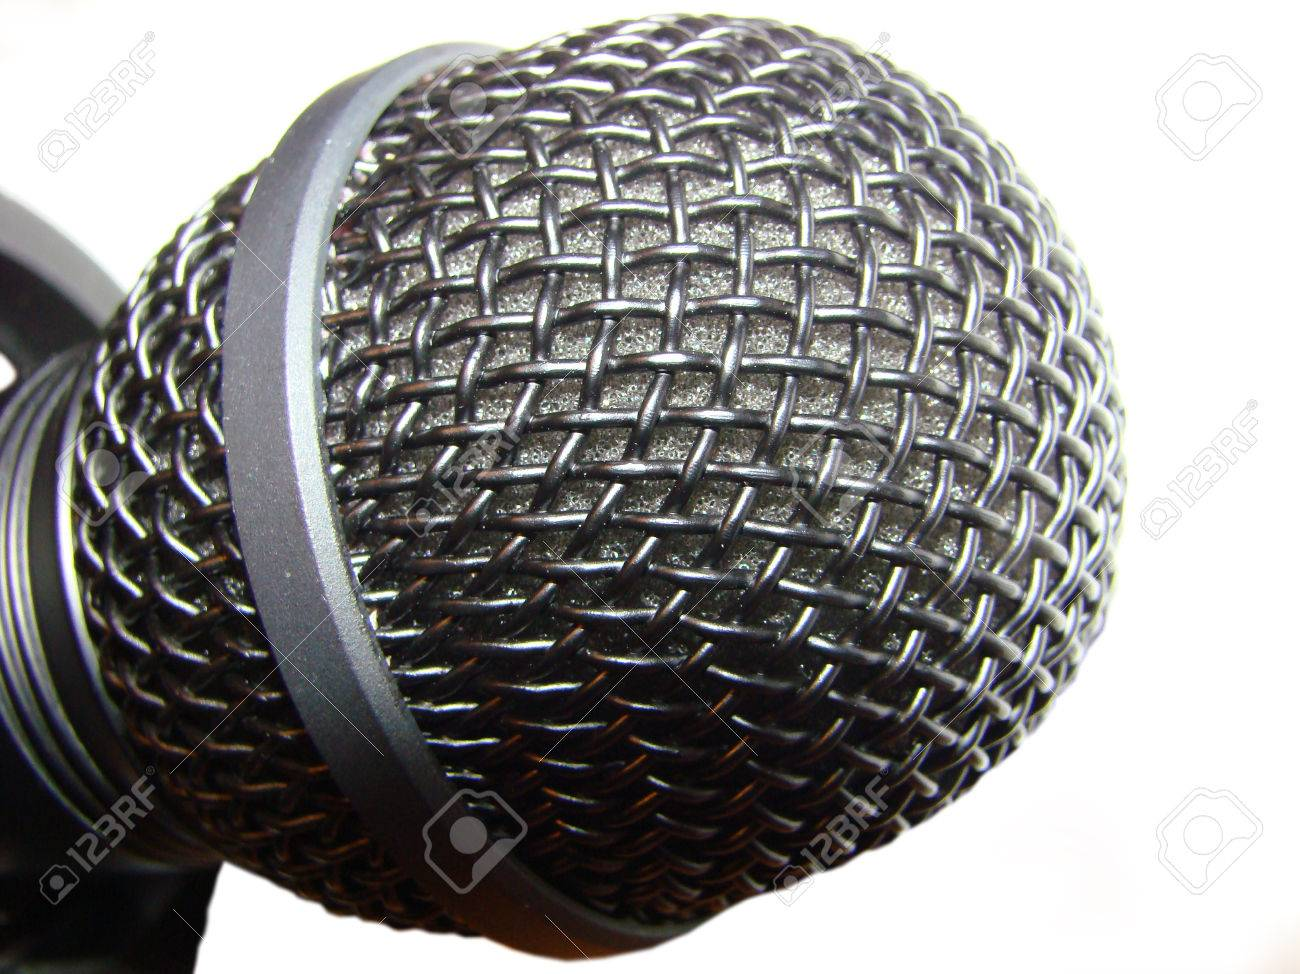 microphone - electroacoustic instrument sound vibrations into electrical current Stock Photo - 25465889